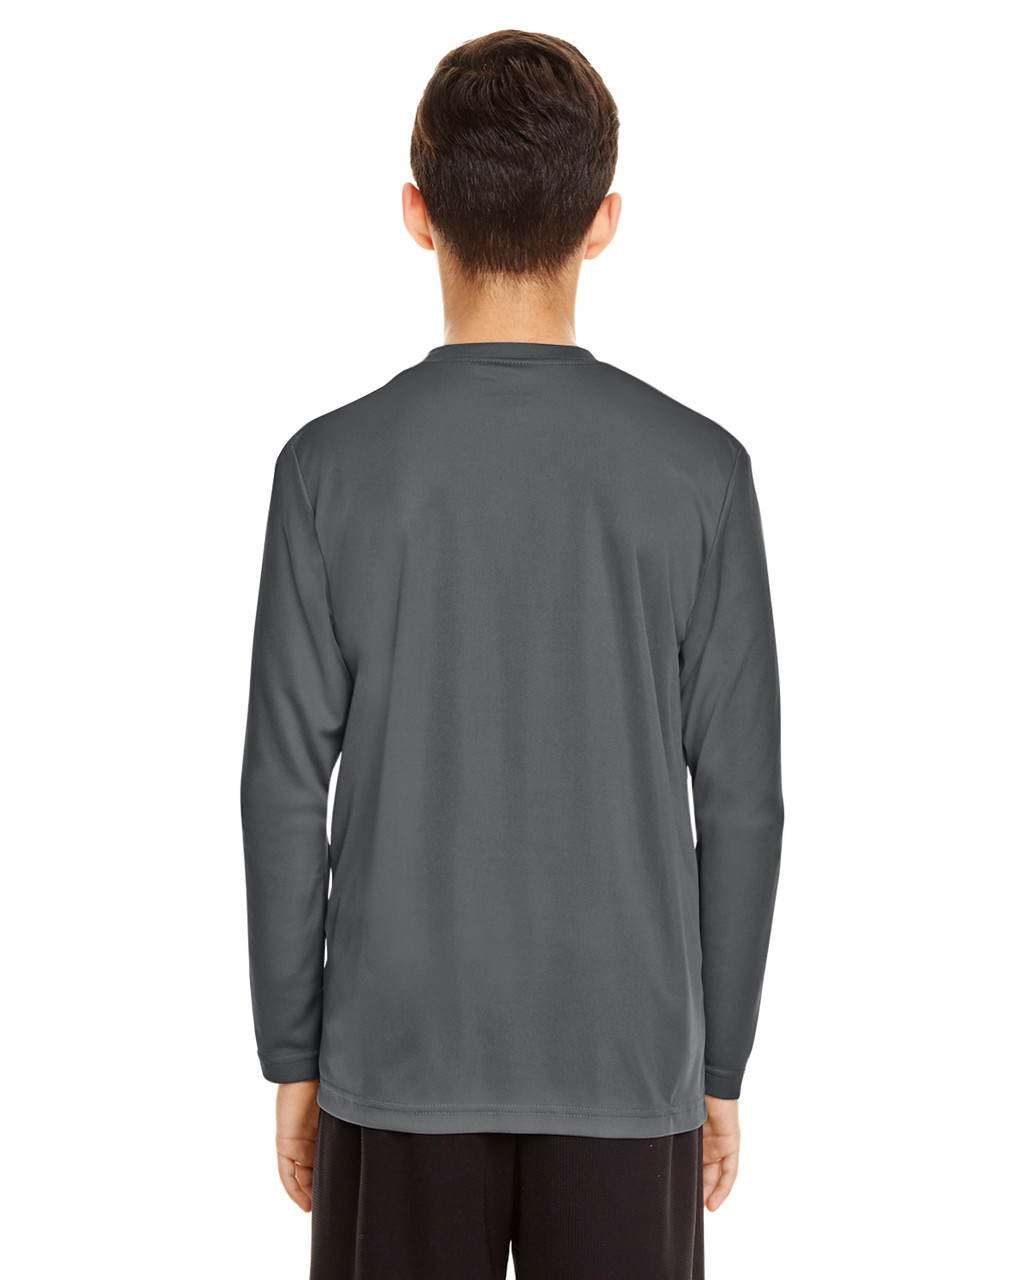 Sport Graphite - Back, TT11YL Team365 Youth Zone Performance Long Sleeve T-shirt | BlankClothing.ca